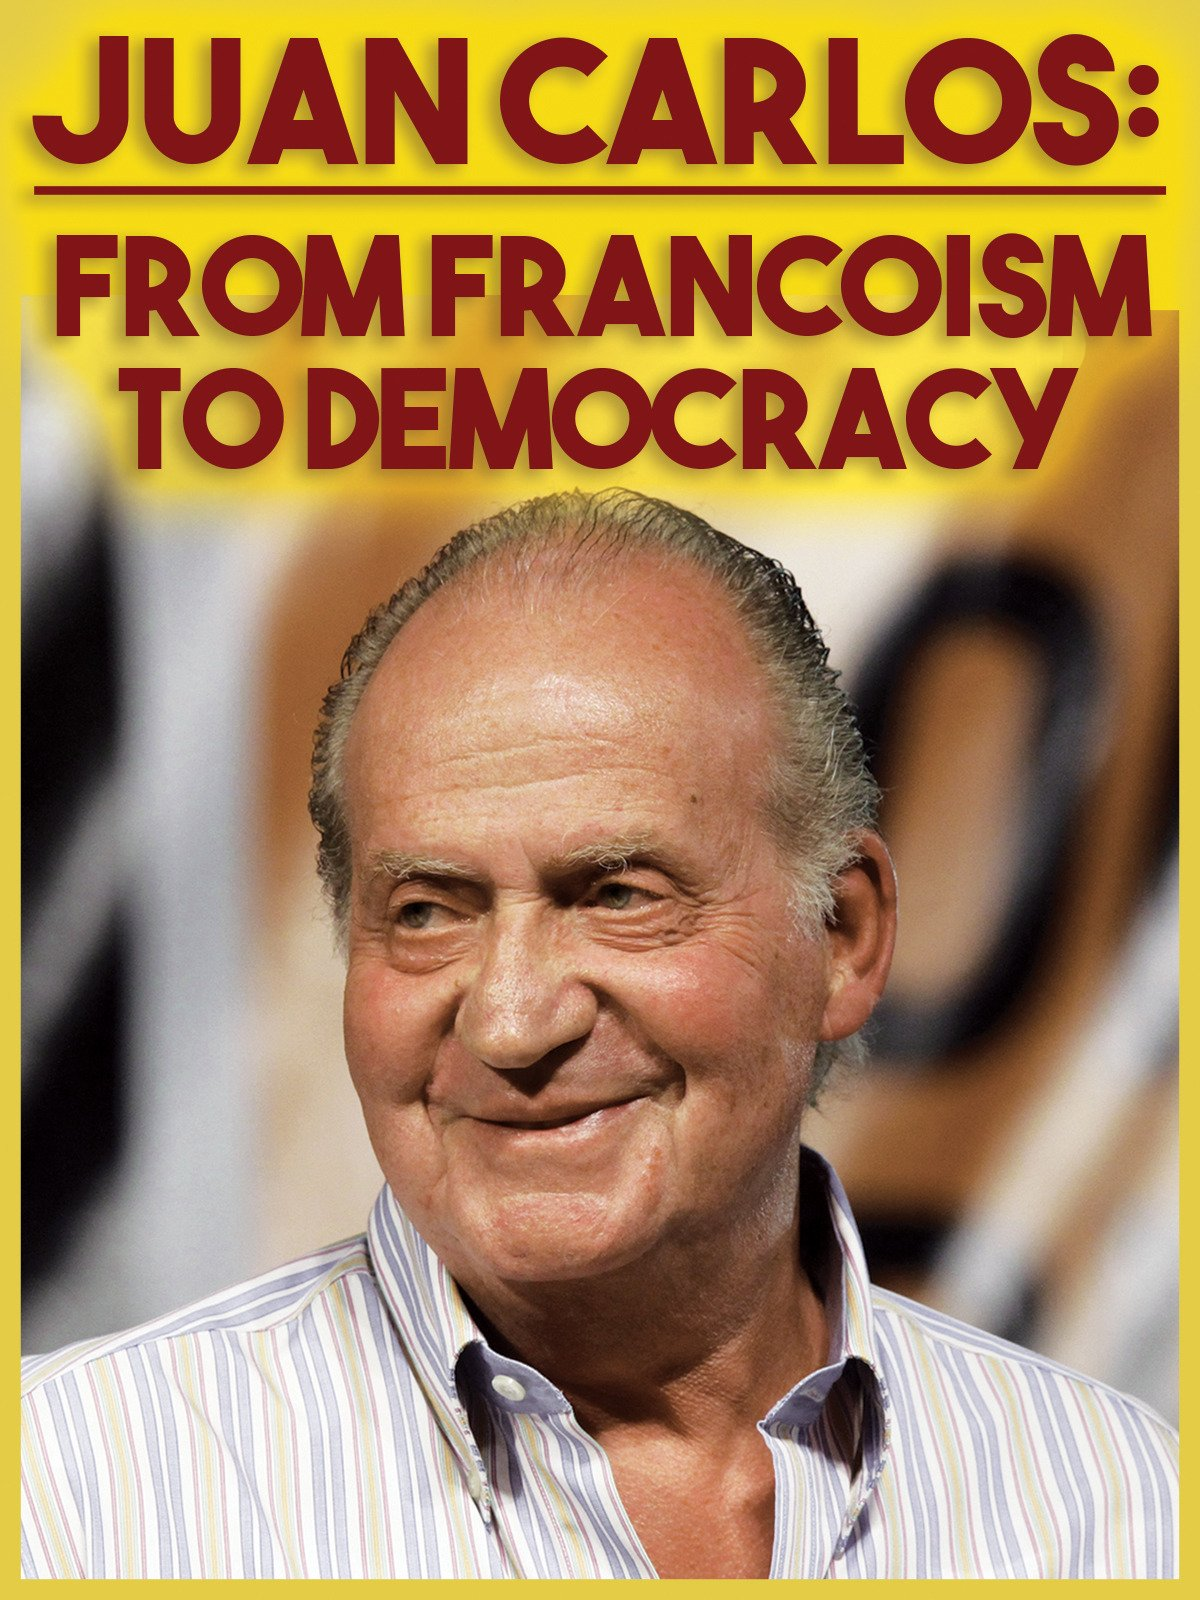 Juan Carlos: From Francoism to Democracy